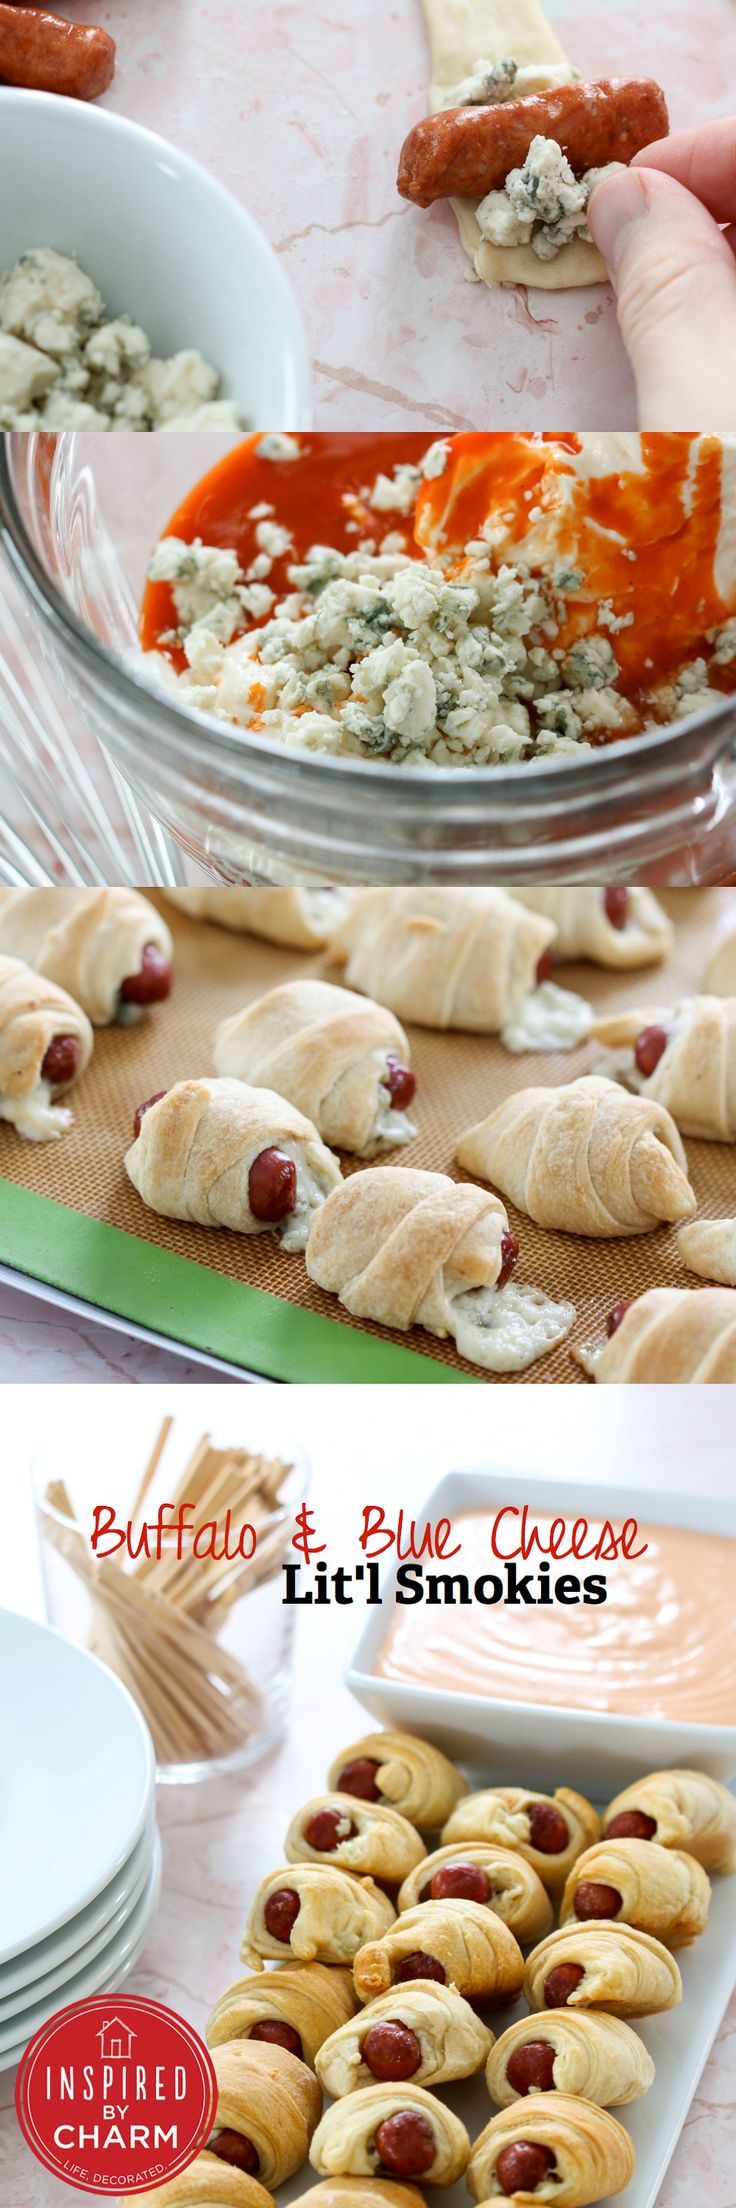 WANT --> Buffalo & Blue Cheese Lit'l Smokies // totally perfect, fun and flavorful for game day! via Inspired by Charm #superbowl #appetizer #wings